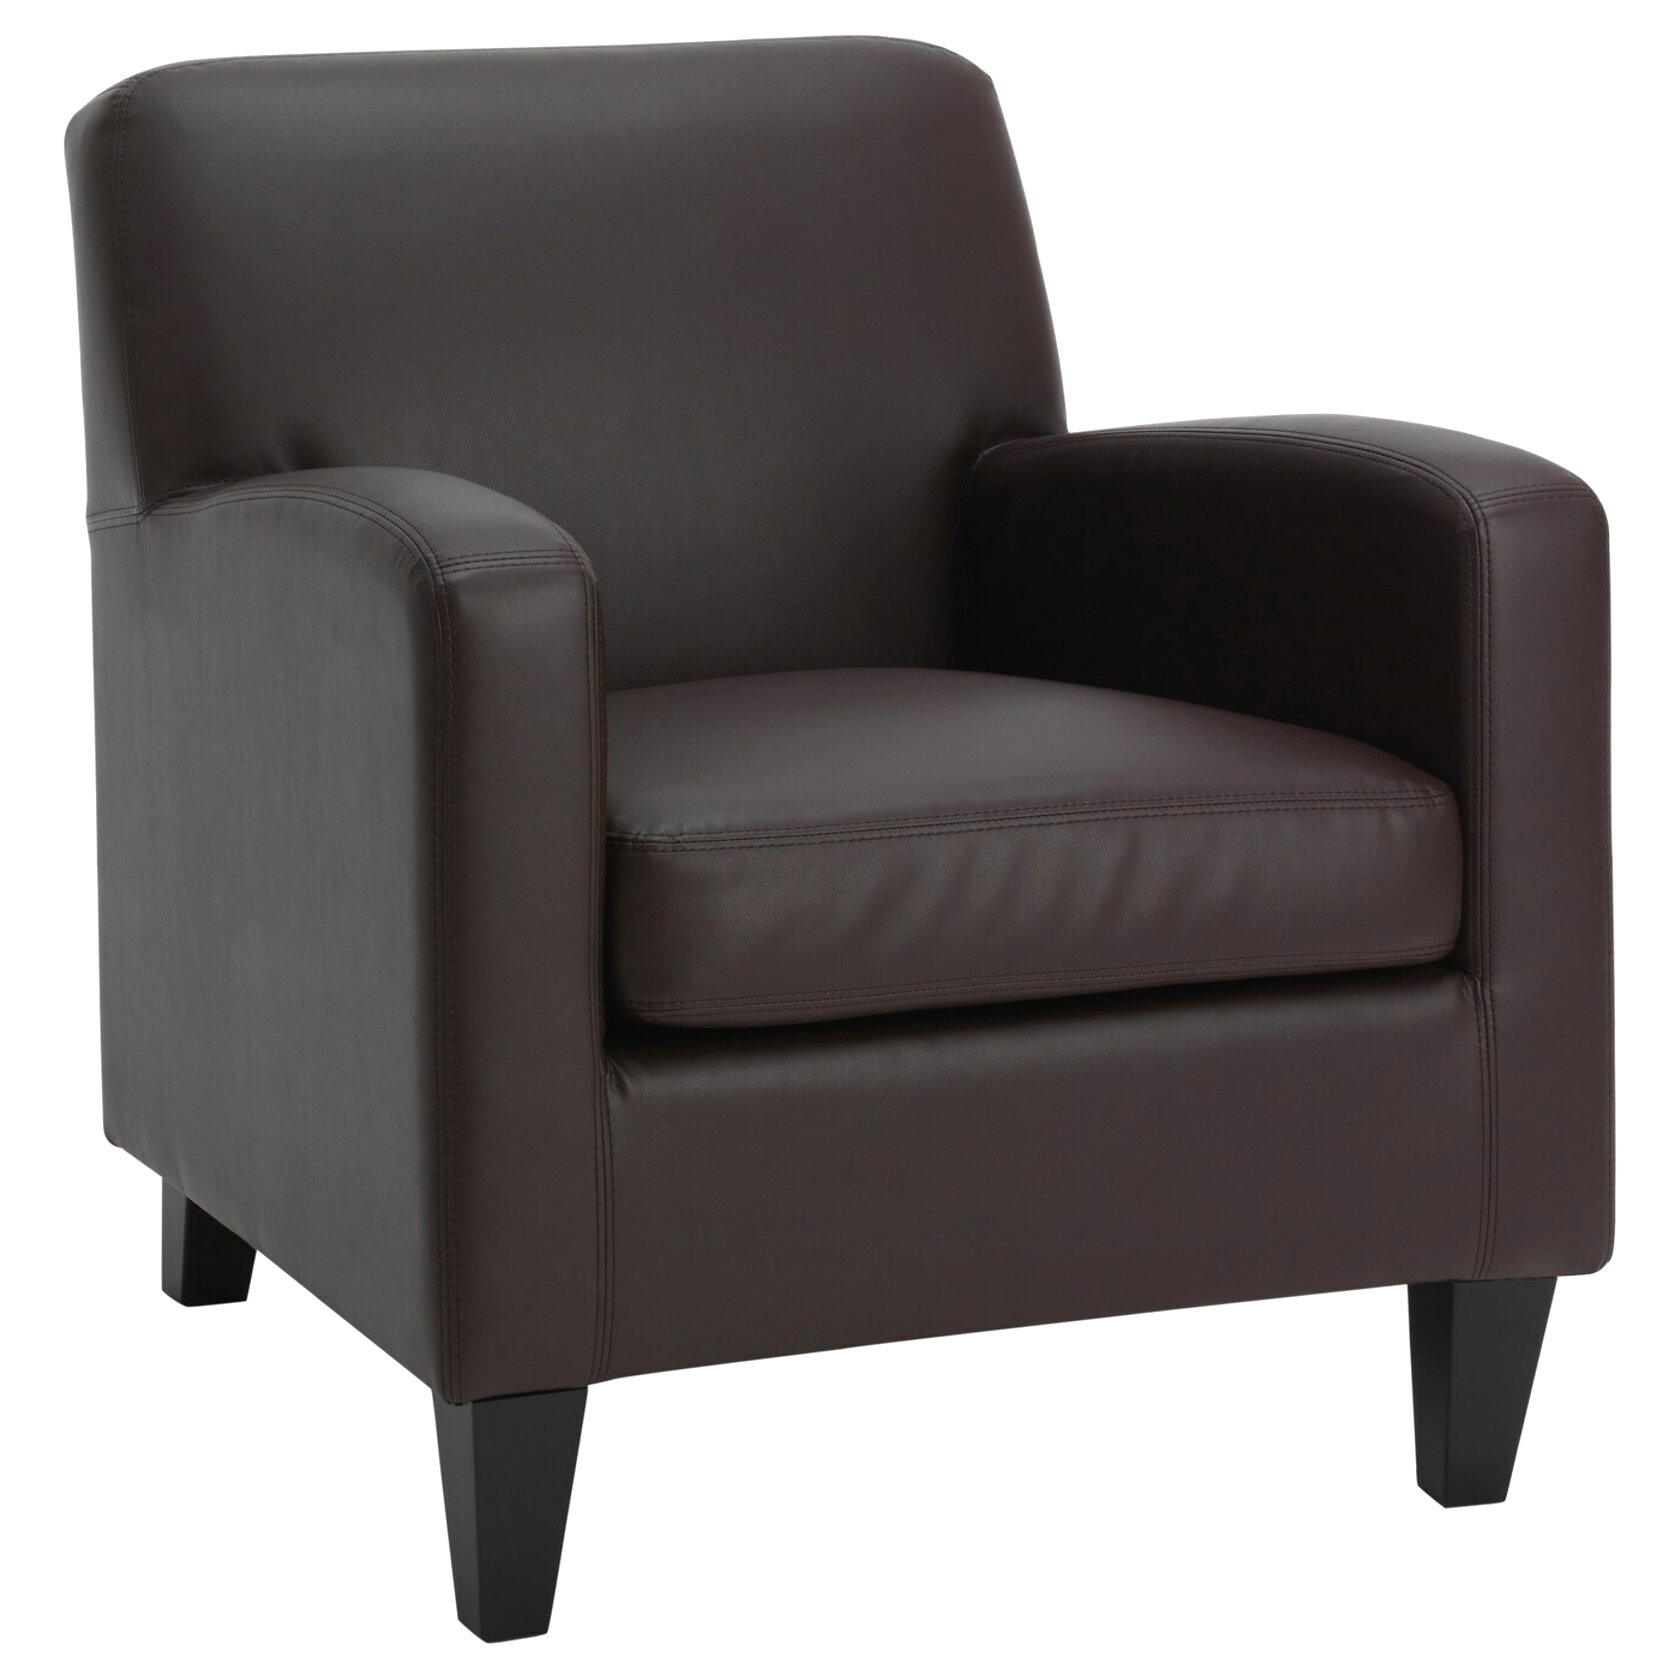 brown arm chair for sale